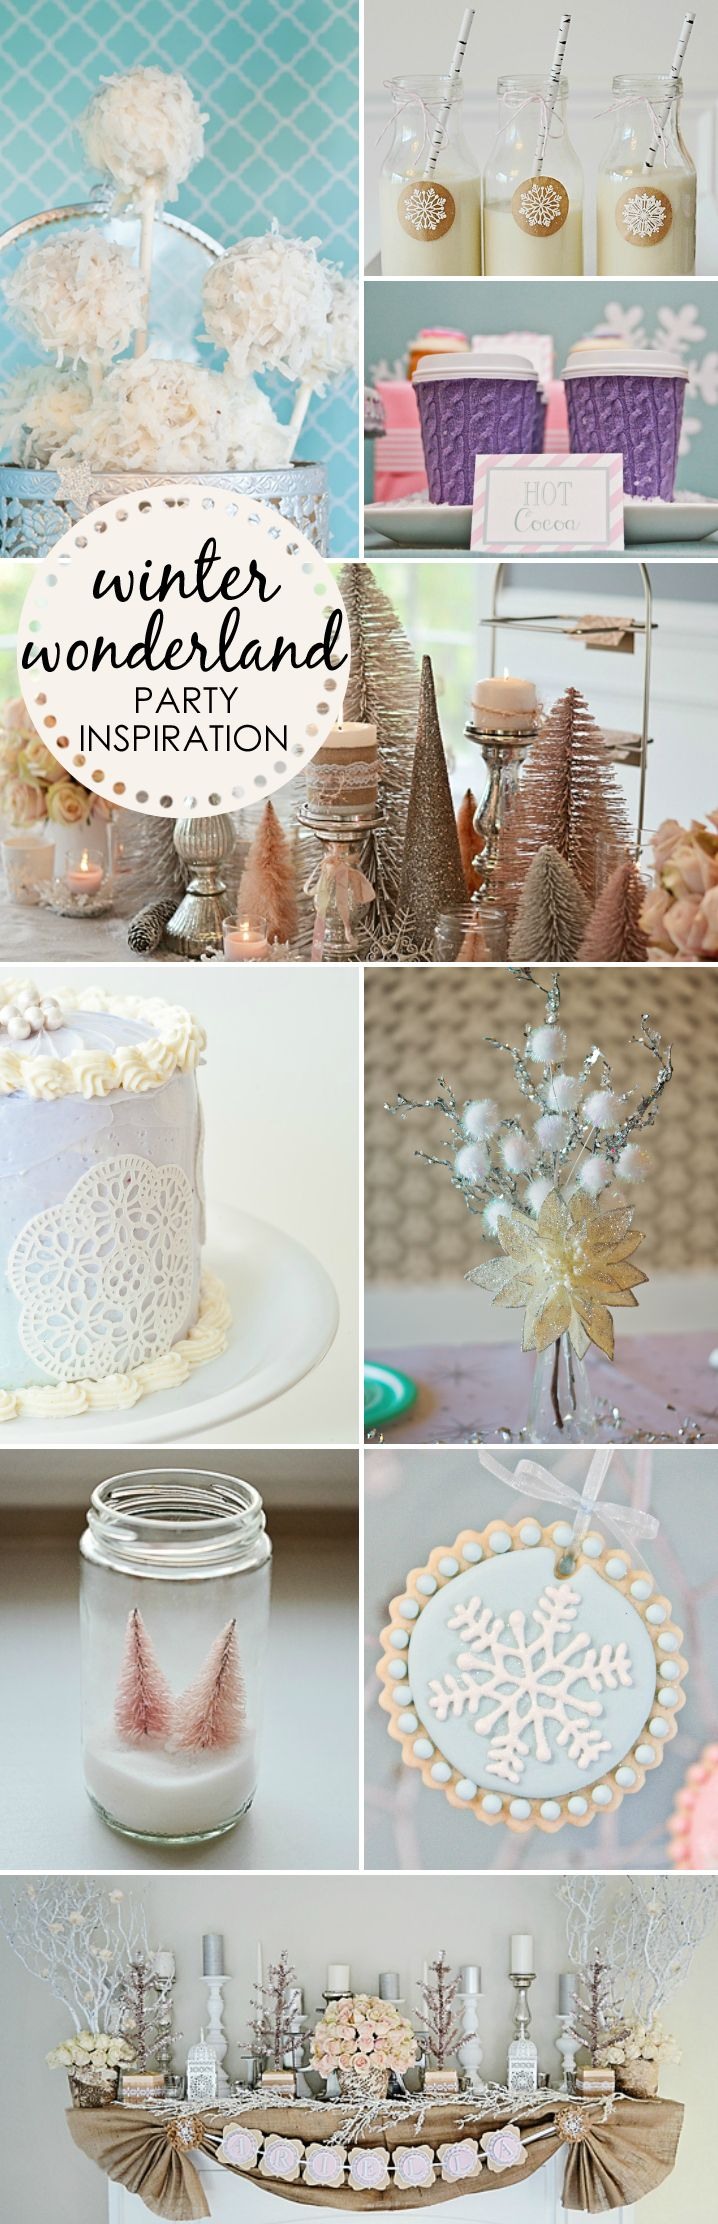 Winter Wonderland Party Ideas - from food and decor to snack and sweet treat ideas!